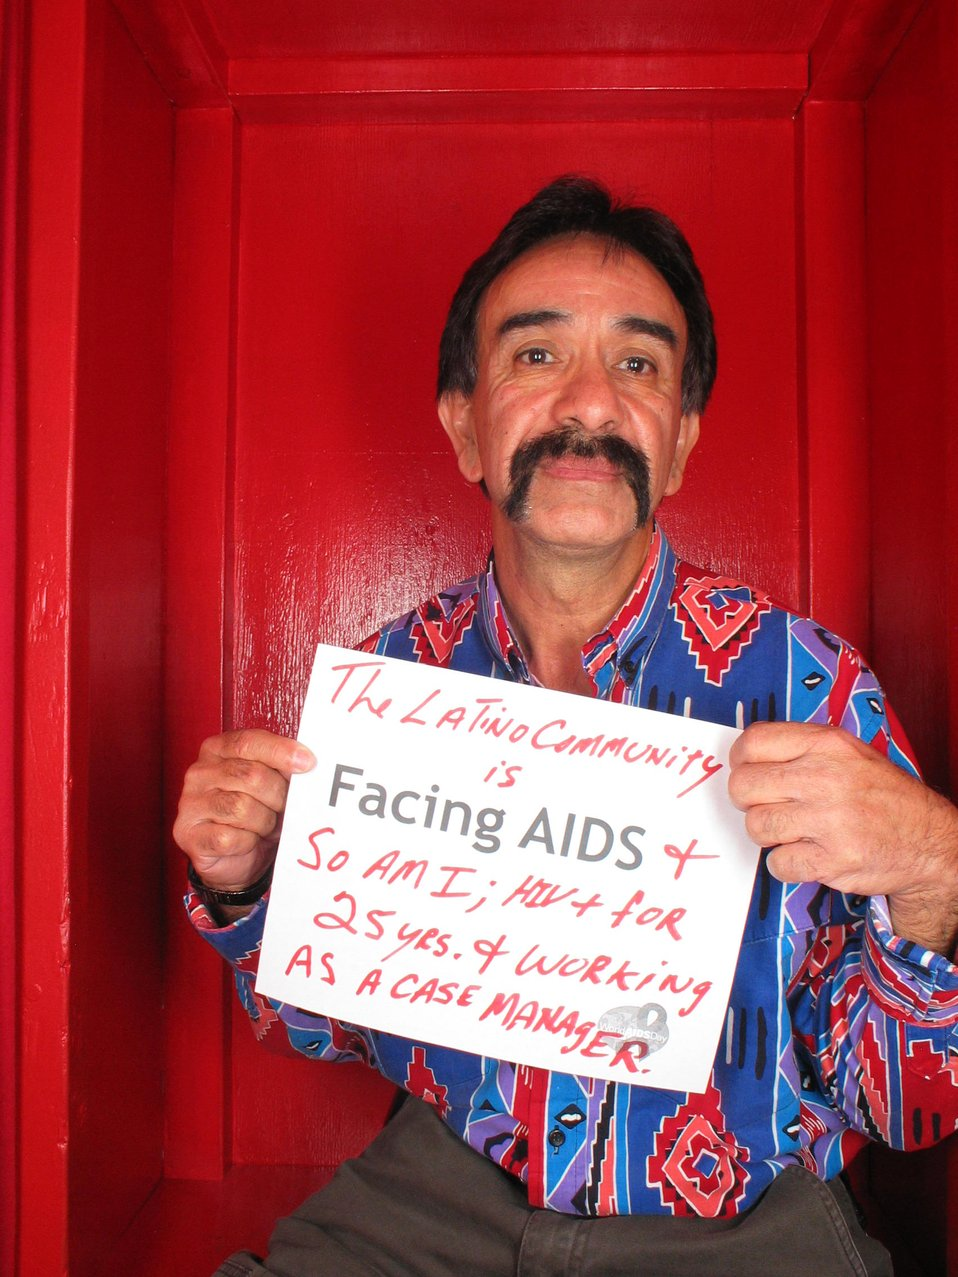 The Latino community is Facing AIDS and so am I; HIV  for 25 years and working as a case manager.